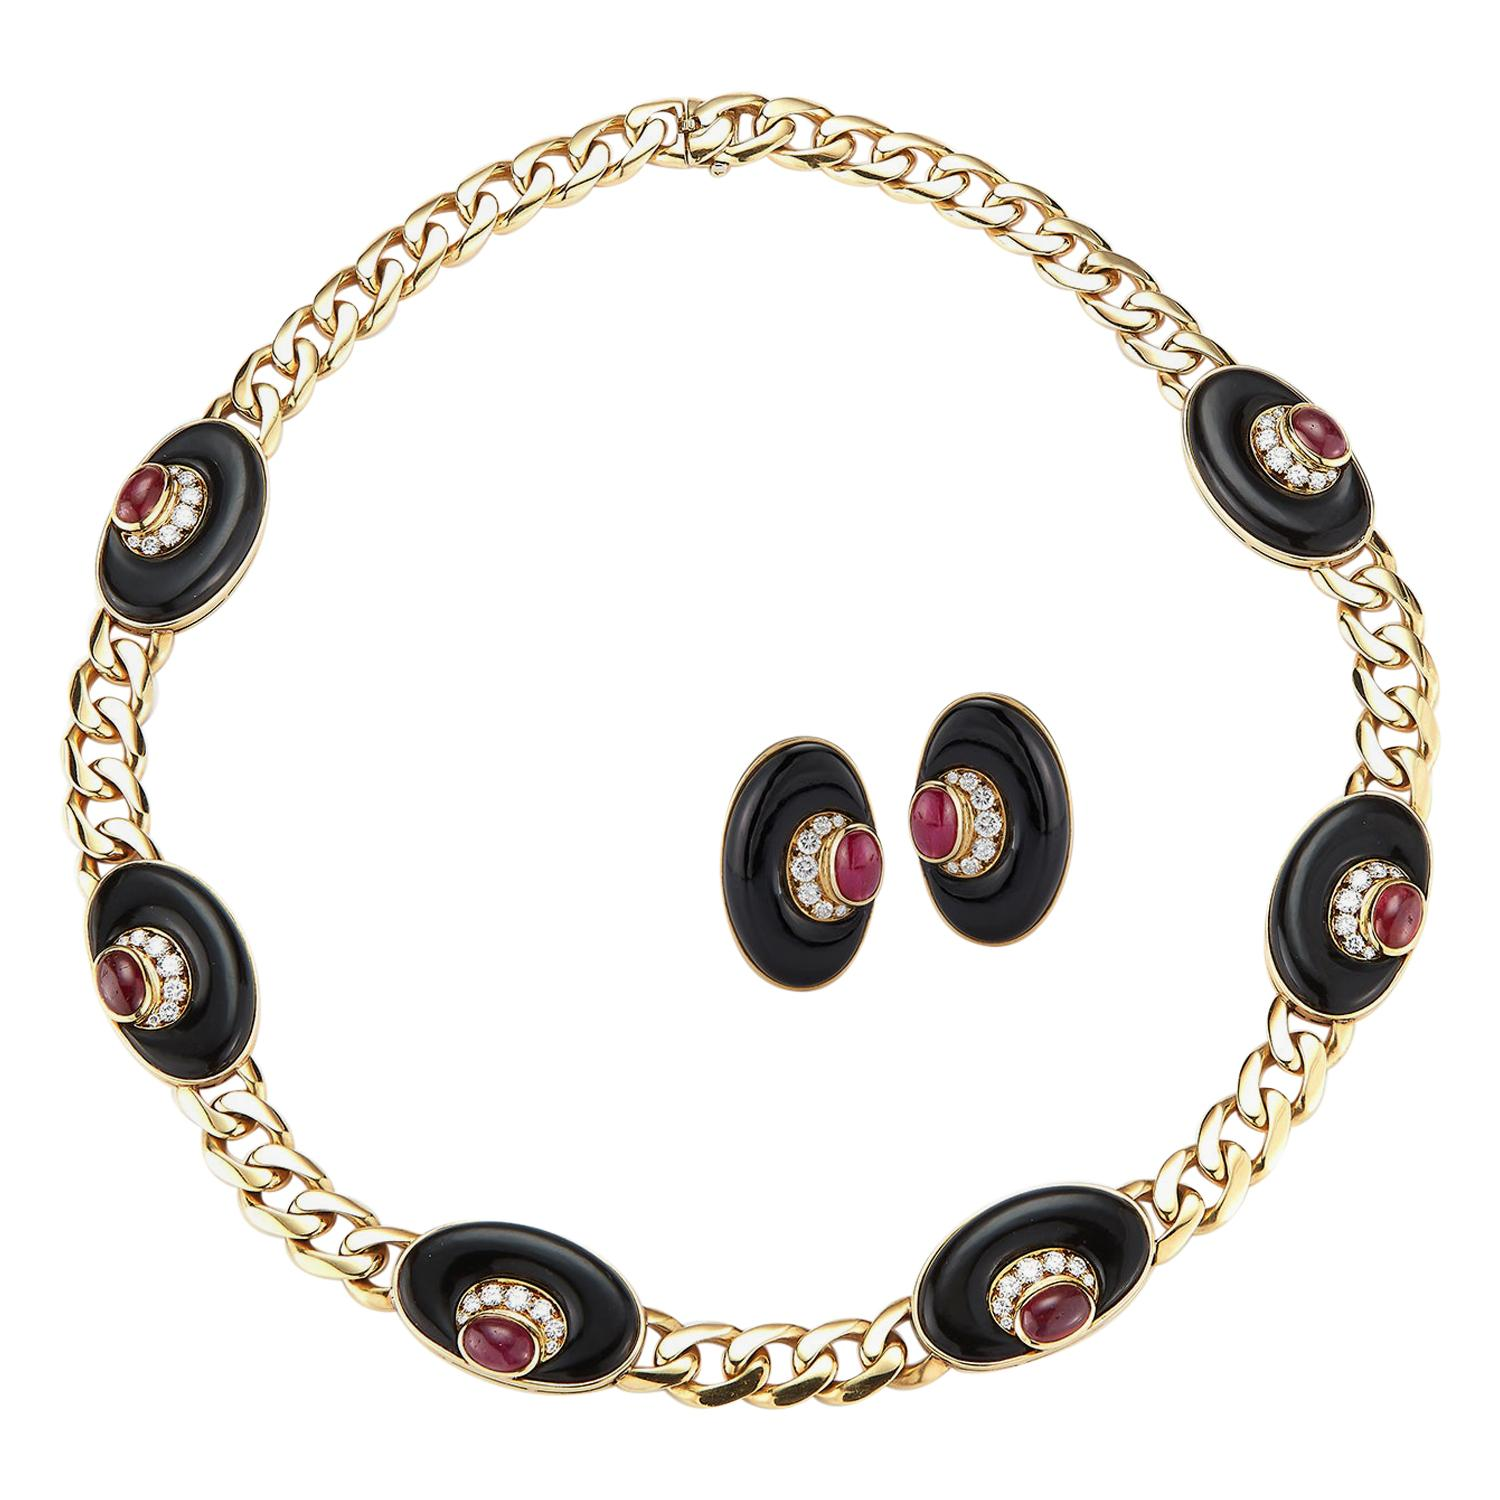 Cabochon Ruby, Onyx, and Diamond Necklace and Earring Set by Bvlgari